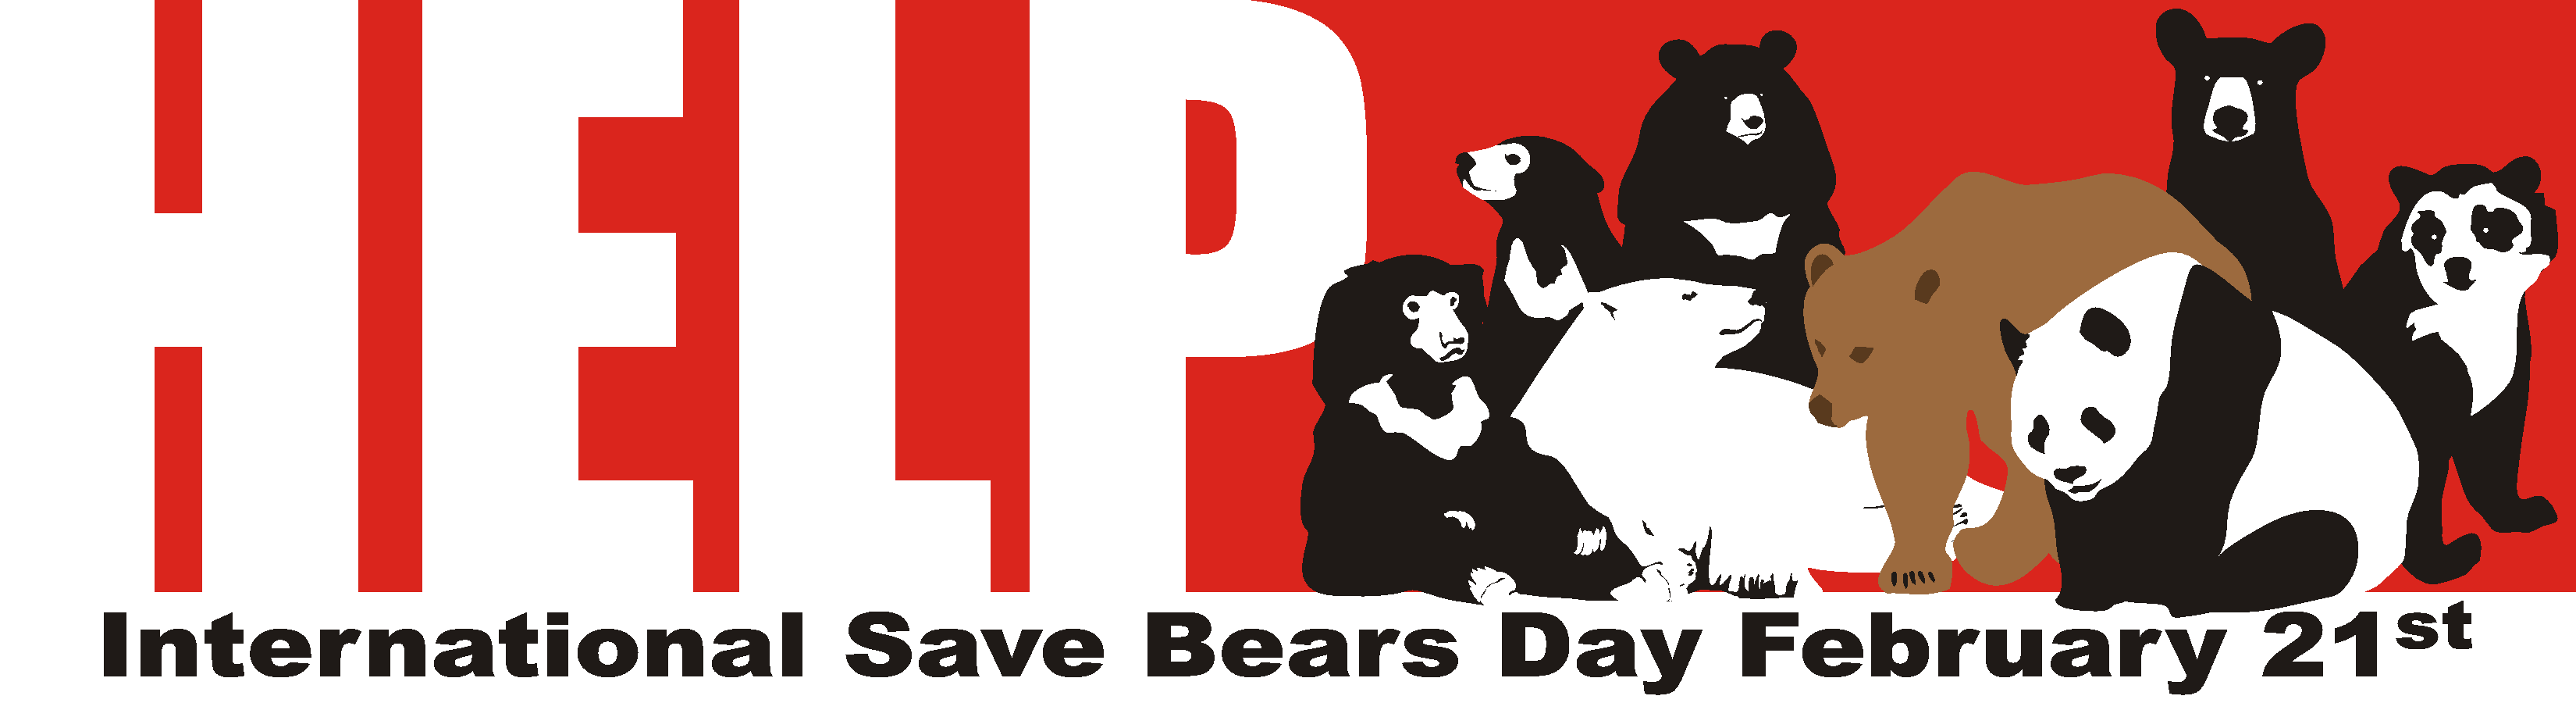 International Save Bears Day - 8 Bears Forever